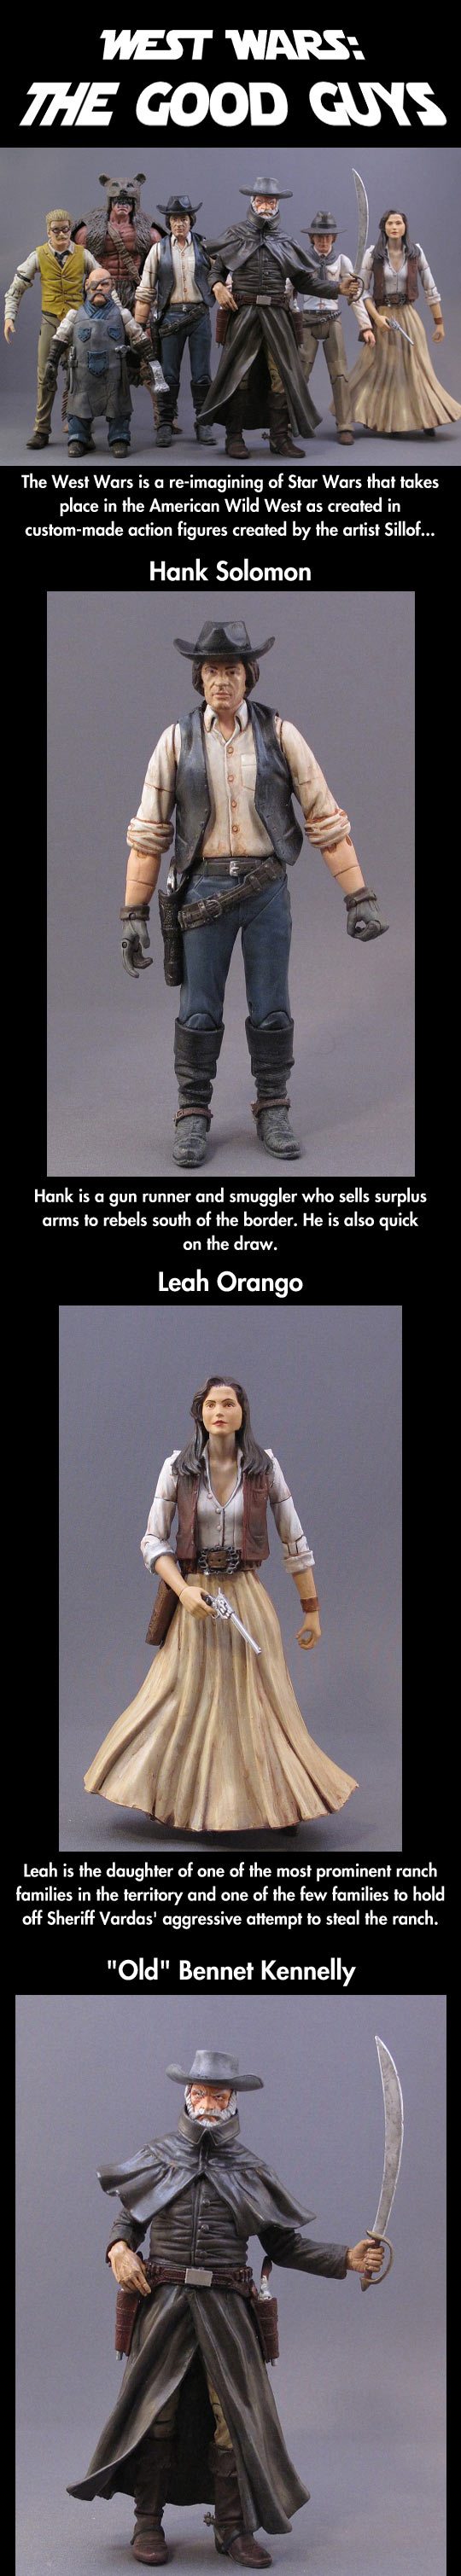 Re-imagining Star Wars in the far west...